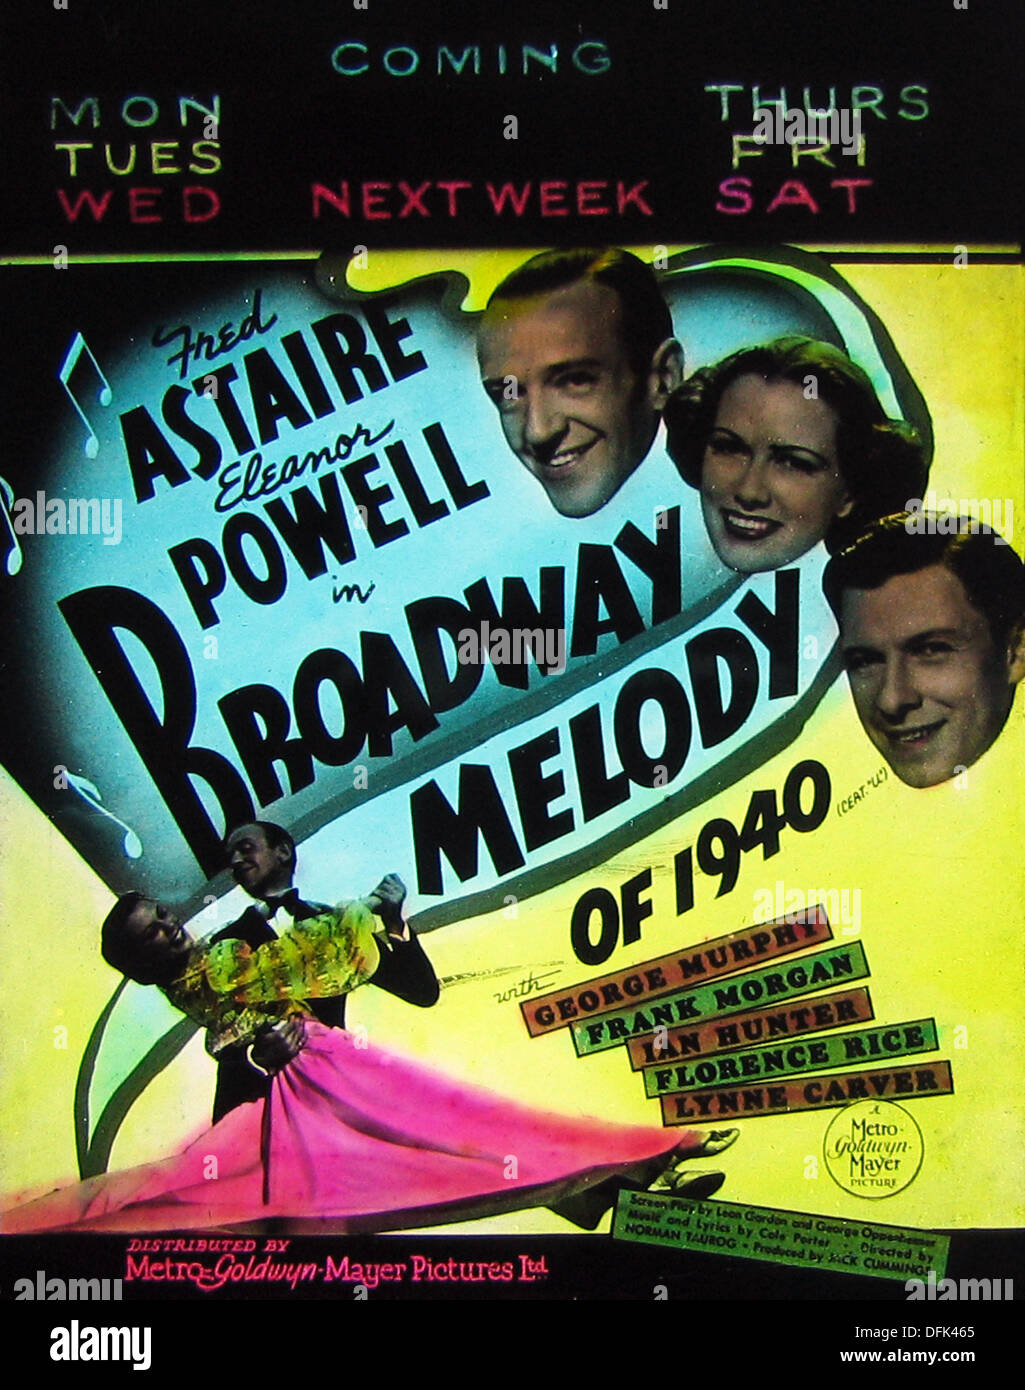 Fred Astaire Eleanor Powell Broadway Melody cinema projection slide 1940 - Stock Image